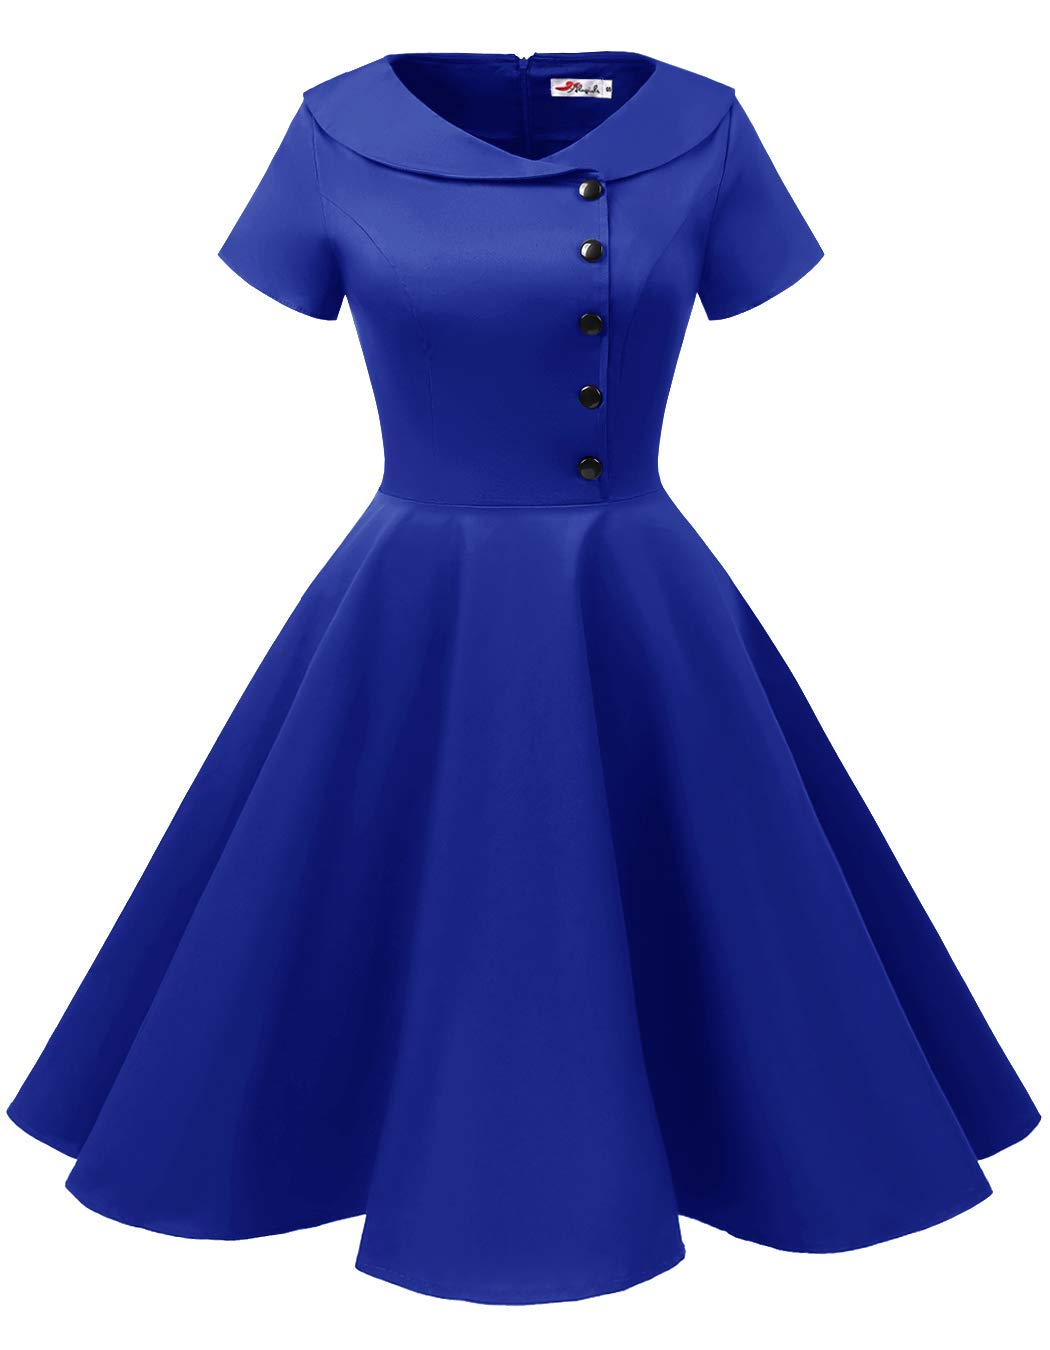 Available at Amazon: ALAGIRLS Women's 1950s Retro Rockabilly Swing Knee Length Dress Vintage Short Sleeves